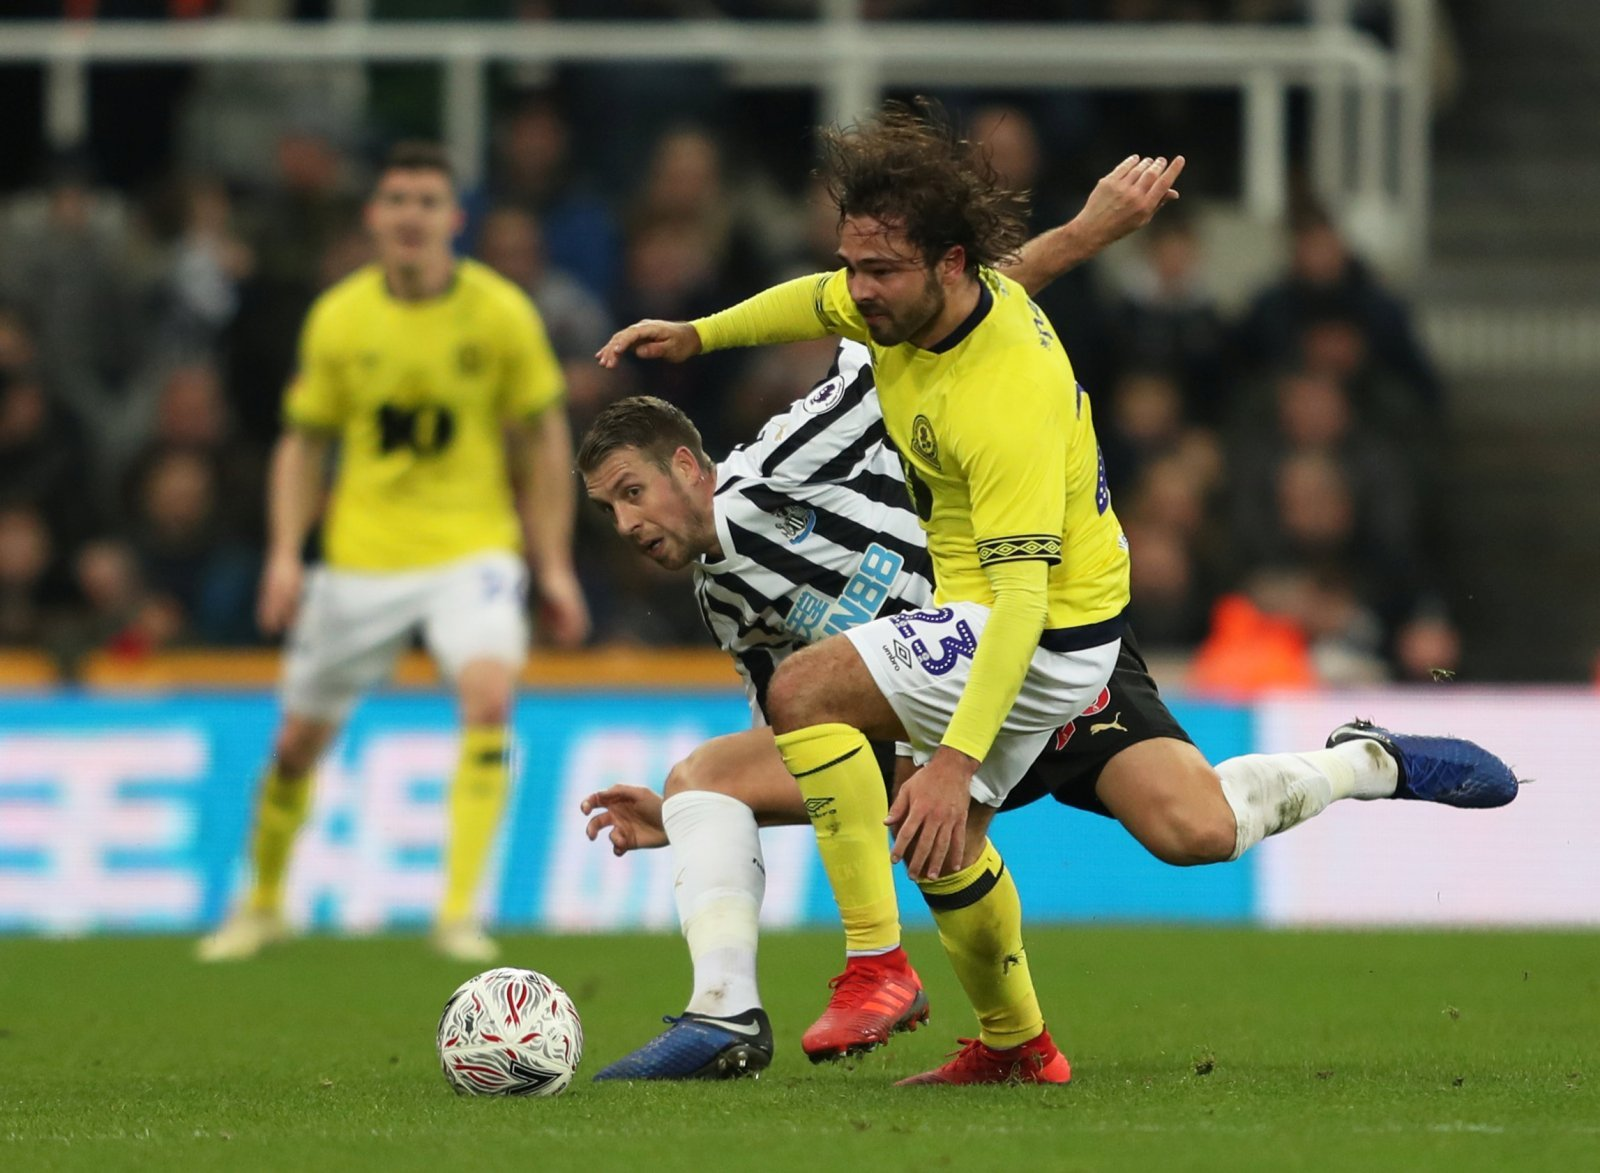 George Elek claims reported Tottenham targets Bradley Dack and Jarrod Bowen are ready for step up in class